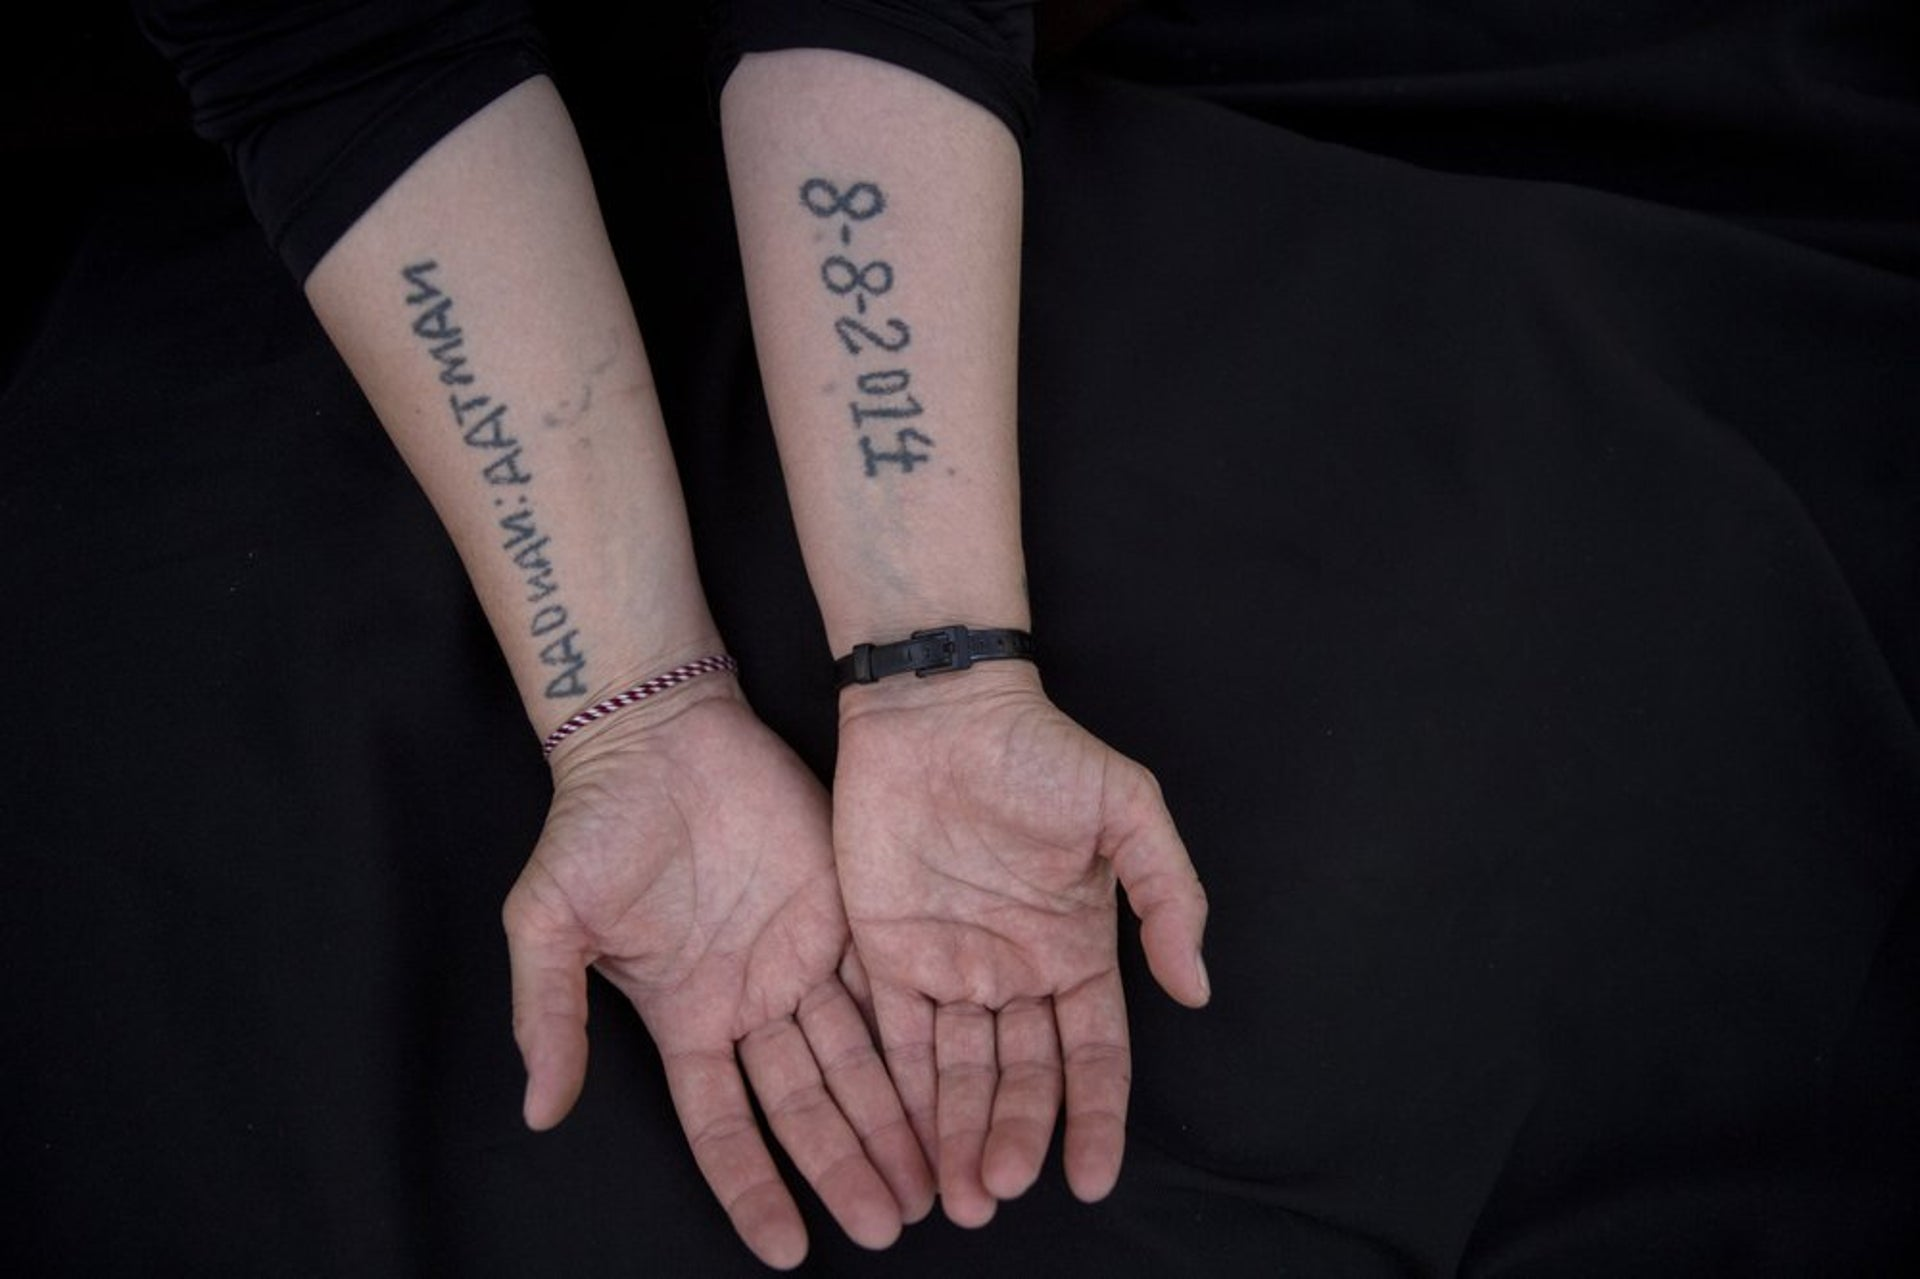 Leila Shamo displays tattoos she made while enslaved by Islamic State militants at her home near Khanke Camp, near Dohuk, Iraq, August 29, 2019.